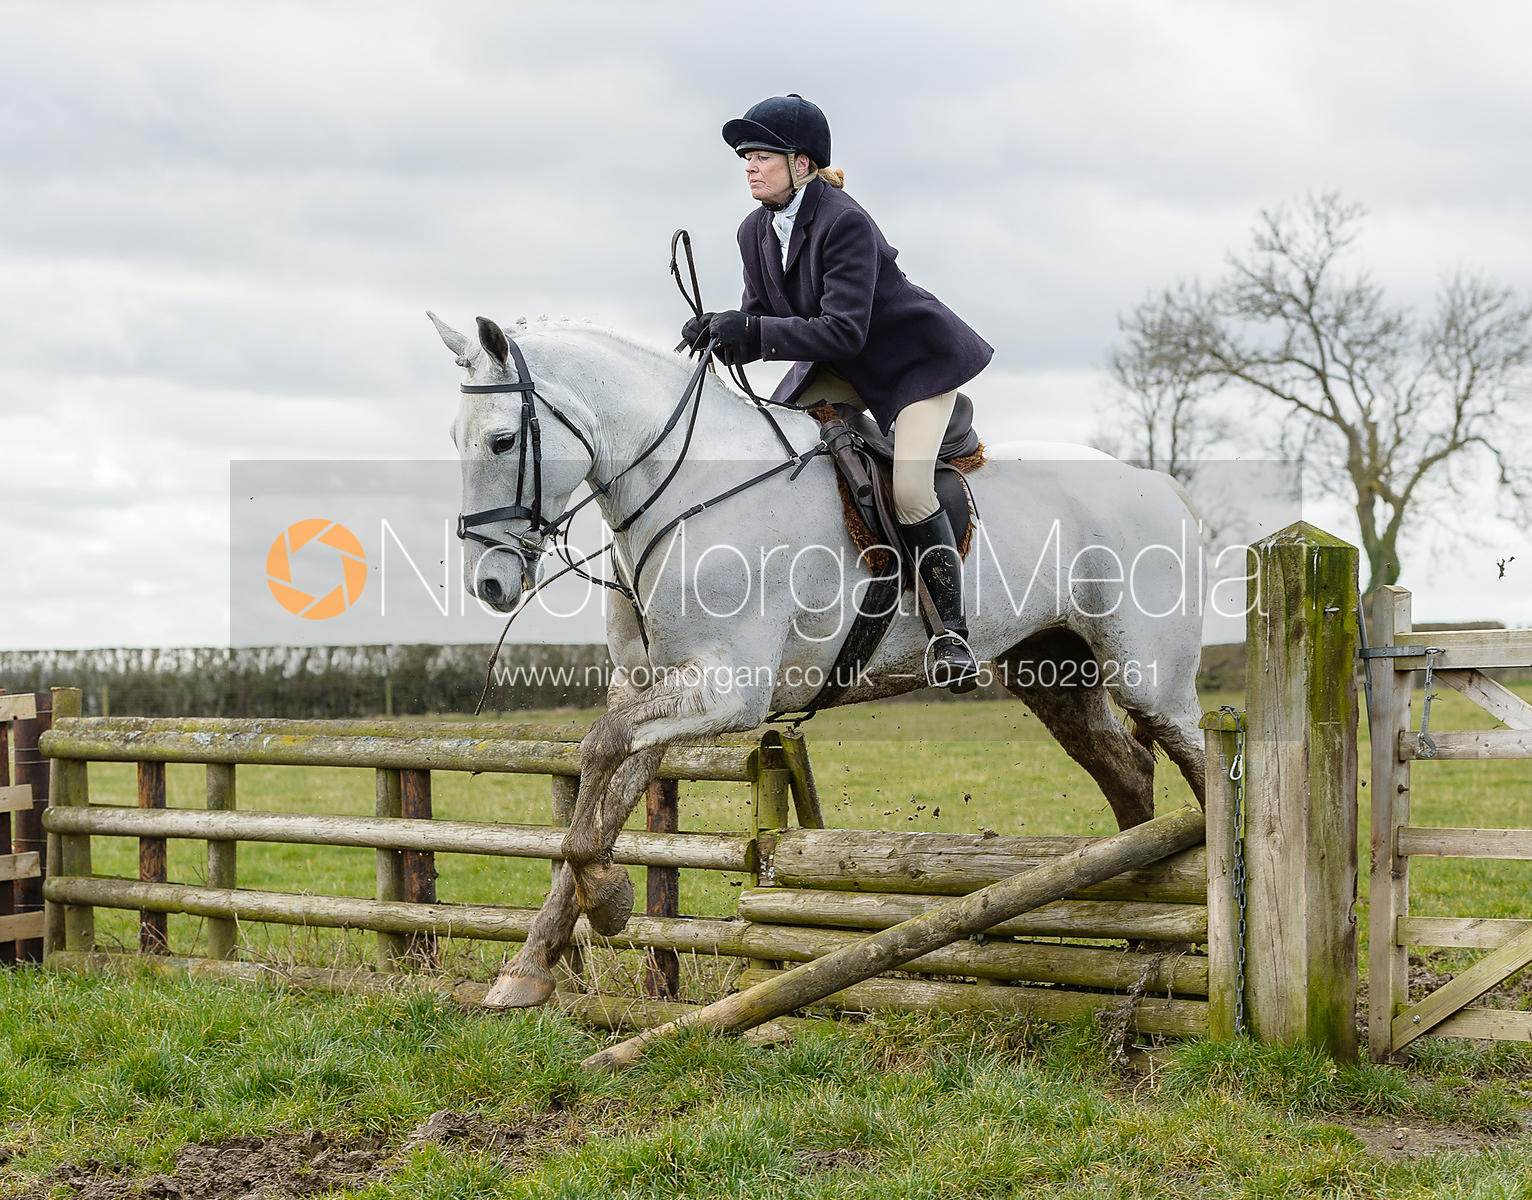 Monica Tebbutt-Wheat jumping a fence at Burrough House